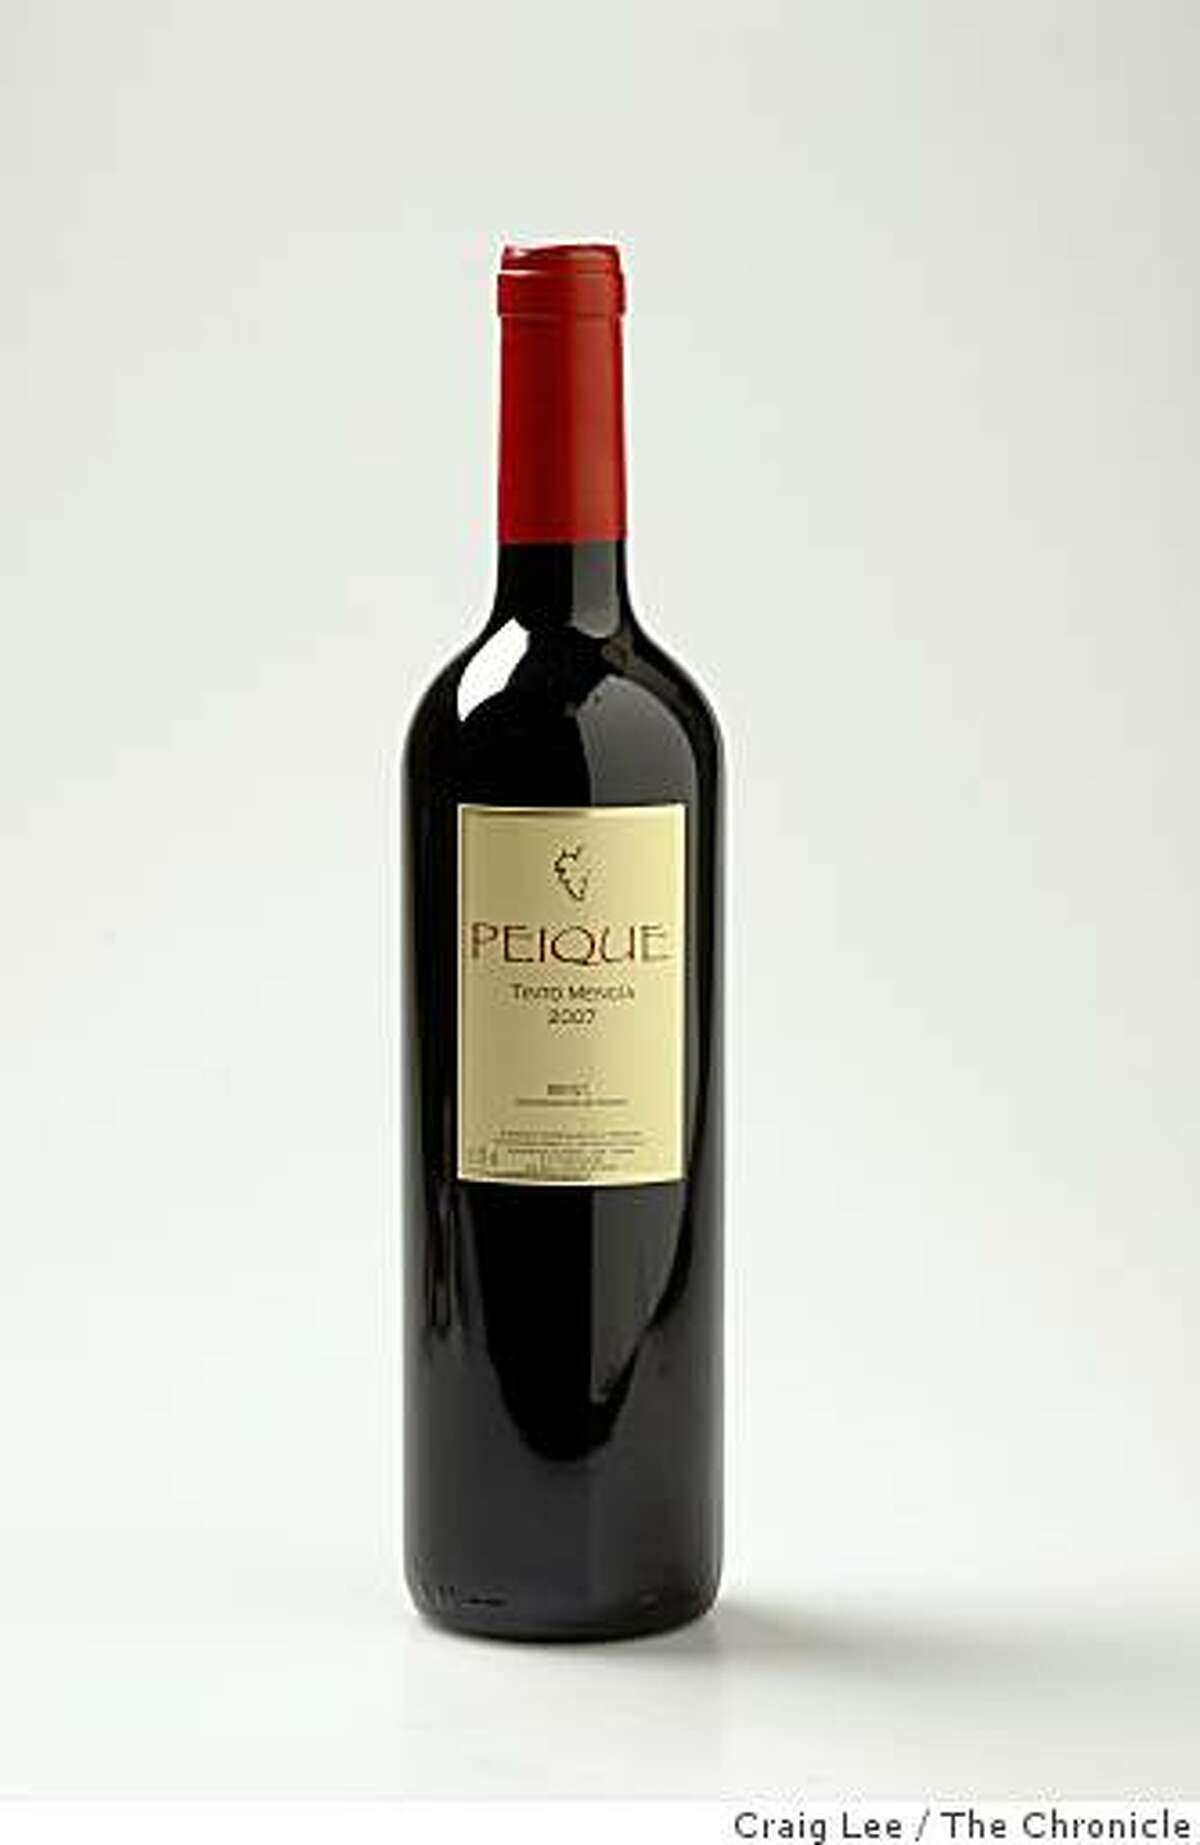 2007 Peique Tinto Mencia wine from the Bierzo region of Spain in San Francisco, Calif., on February 19, 2009.